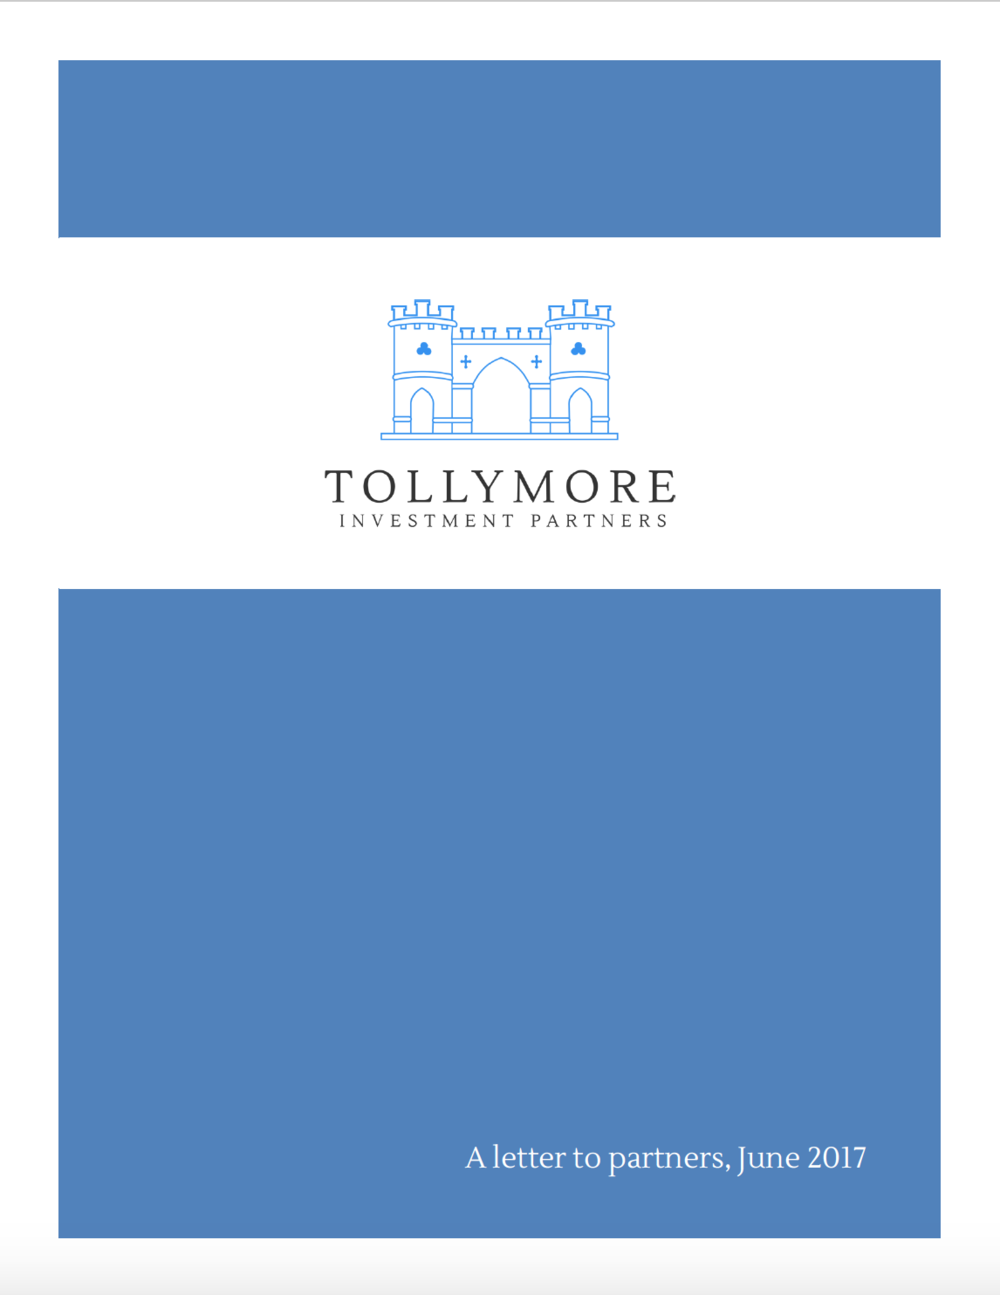 Tollymore letter June 2017